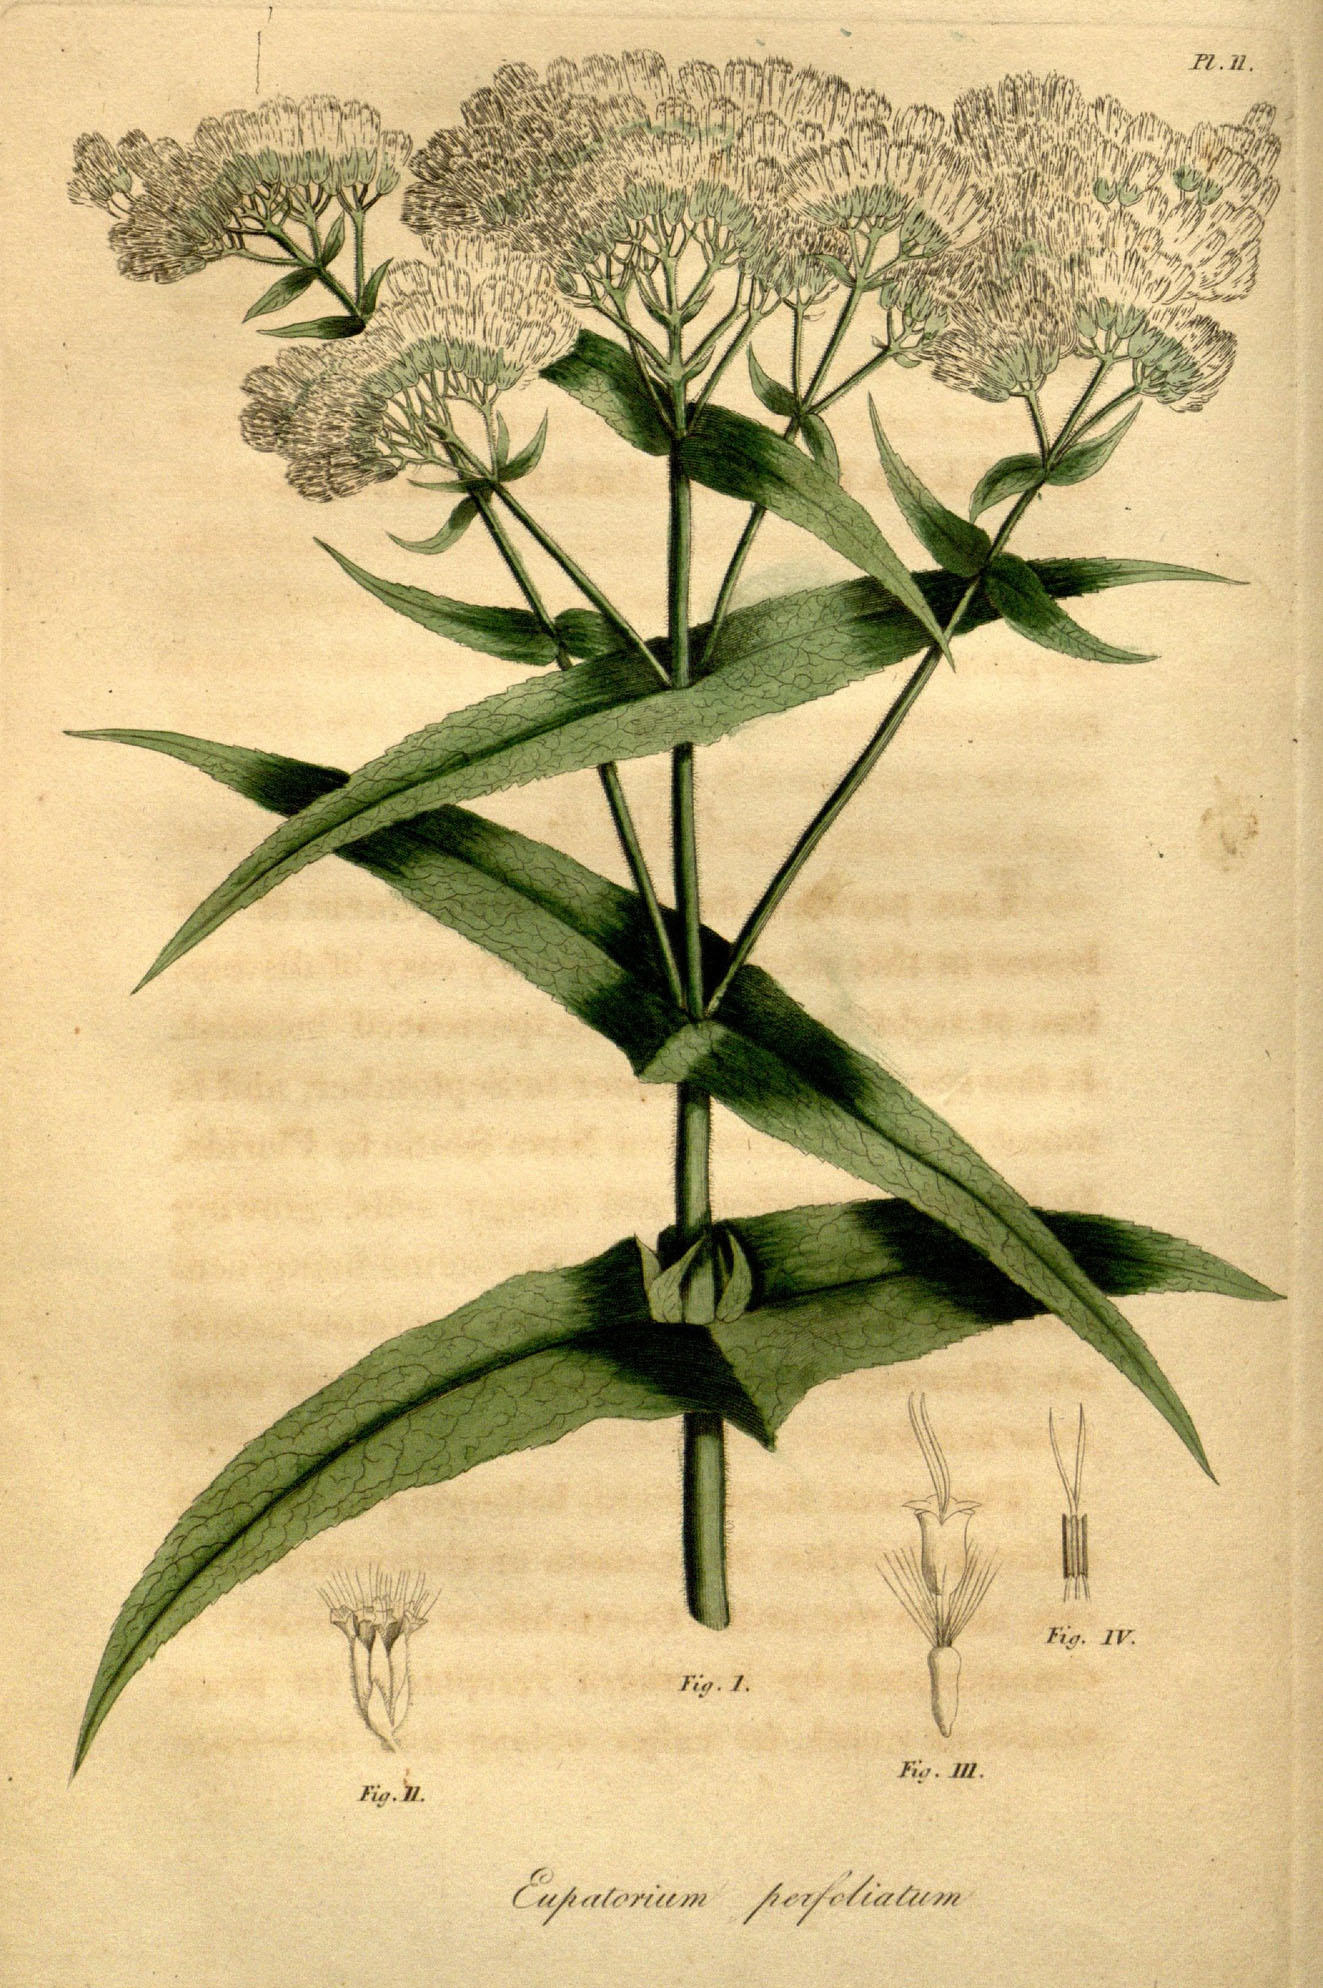 Illustration of a plant in the genus Eupatorium, with small white flowers.